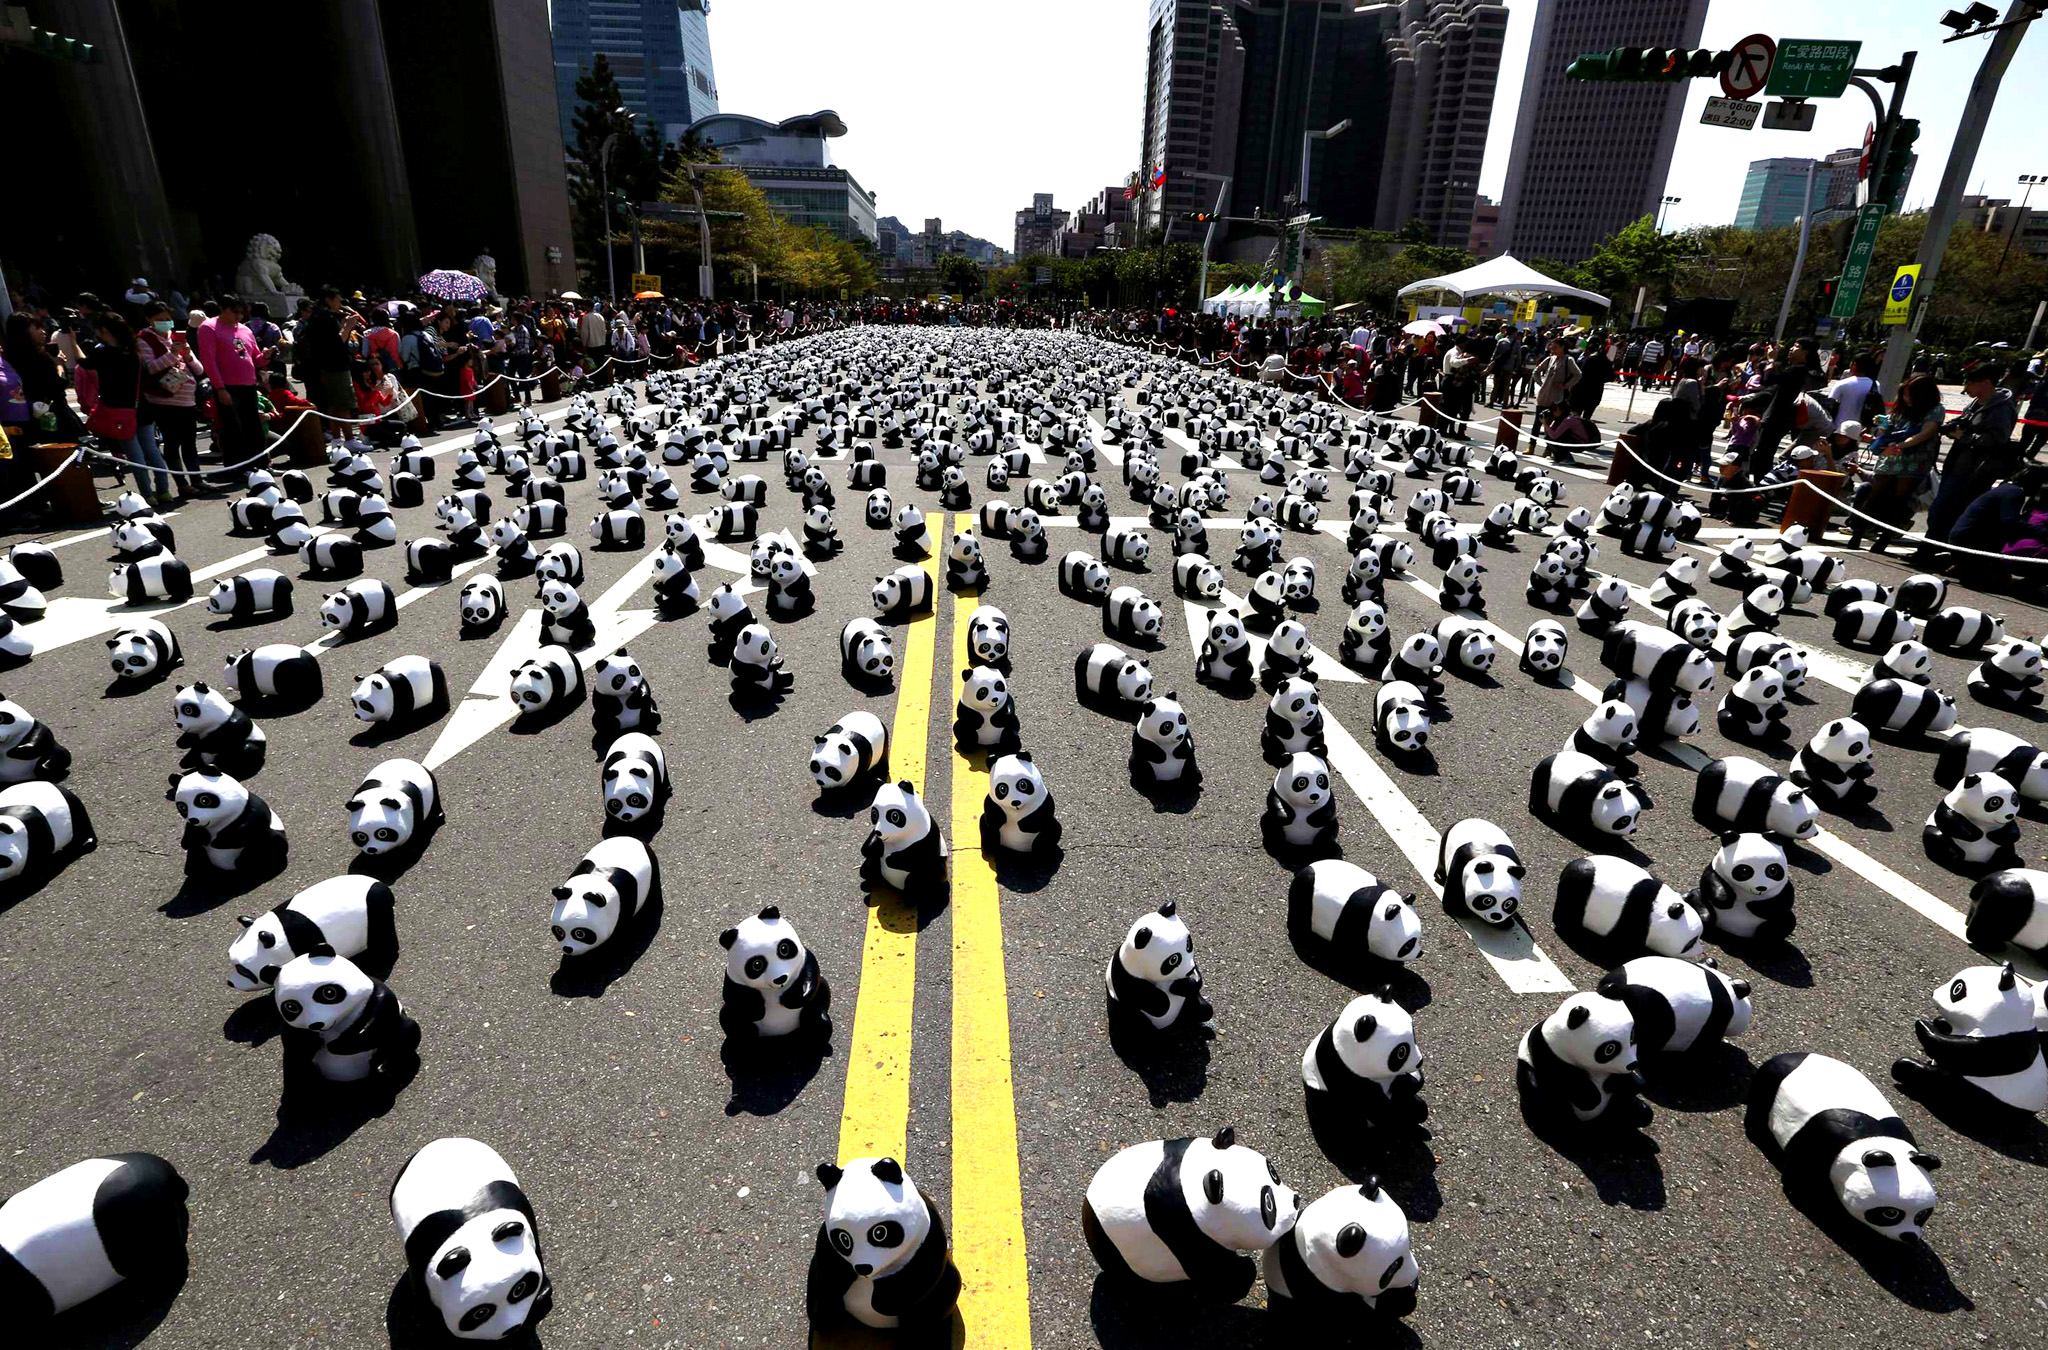 "Papier mache pandas, created by French artist Grangeon, are seen displayed outside Taipei City Hall as part of an exhibition called ""Pandas on Tour""...Papier mache pandas, created by French artist Paulo Grangeon, are seen displayed outside Taipei City Hall as part of an exhibition called ""Pandas on Tour"", February 28, 2014. According to local media, the event was launched by the World Wildlife Fund (WWF) first in Paris in 2008. Approximately 1,600 panda sculptures were displayed in the exhibition to remind people of the similar number of giant pandas still living in the wild and call on people's protection of endangered species. REUTERS/Patrick Lin (TAIWAN - Tags: ANIMALS SOCIETY ENVIRONMENT)"